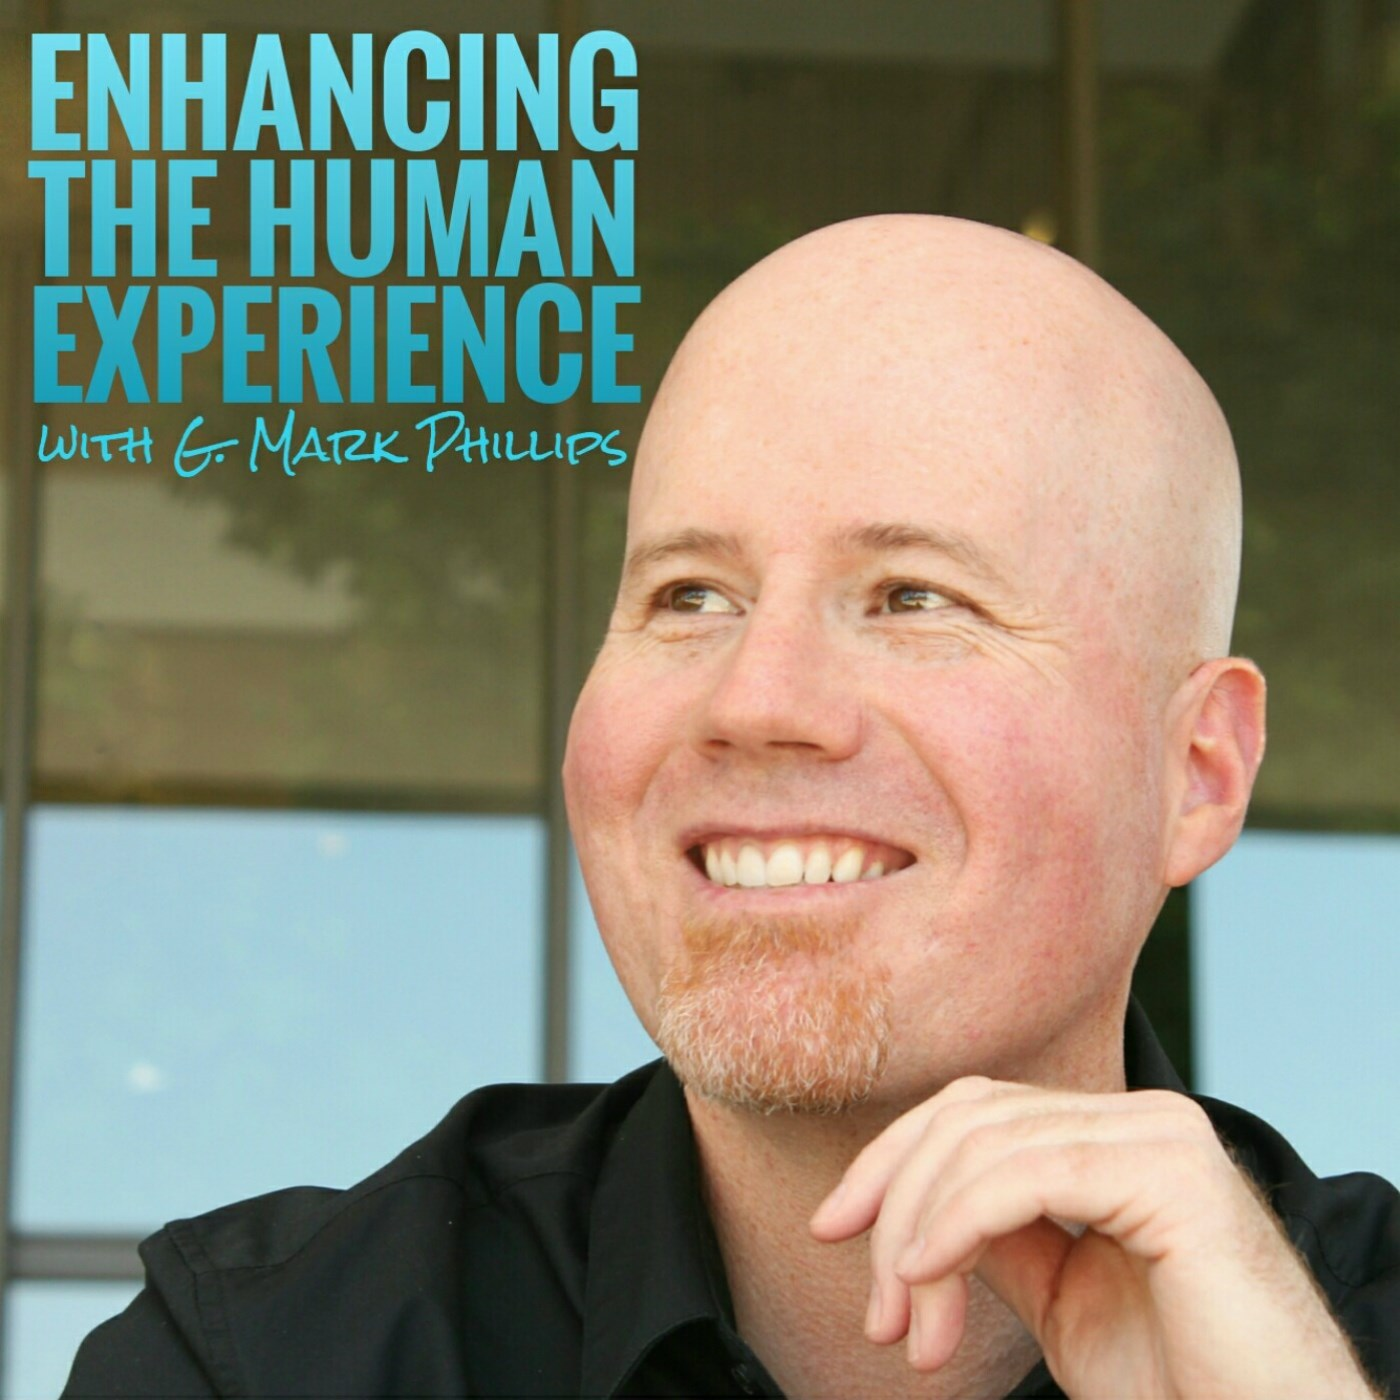 Enhancing The Human Experience with Mark Phillips